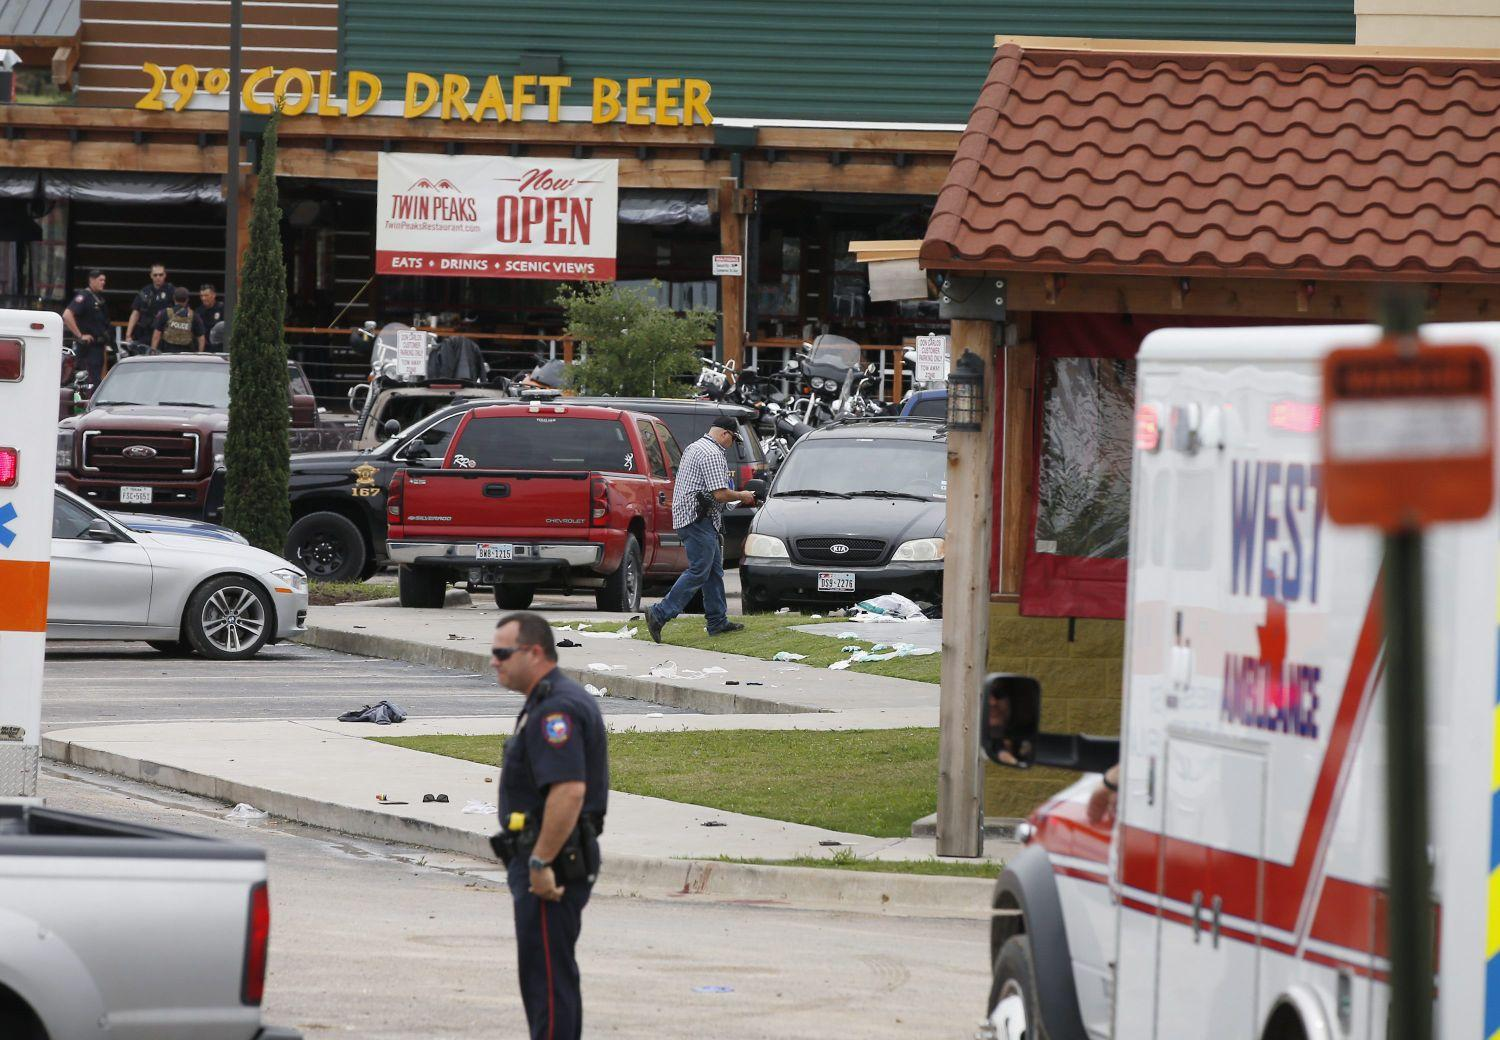 Leaked Docs Show Waco Police Knew Potential For Violence Ahead Of - Twin peaks car show